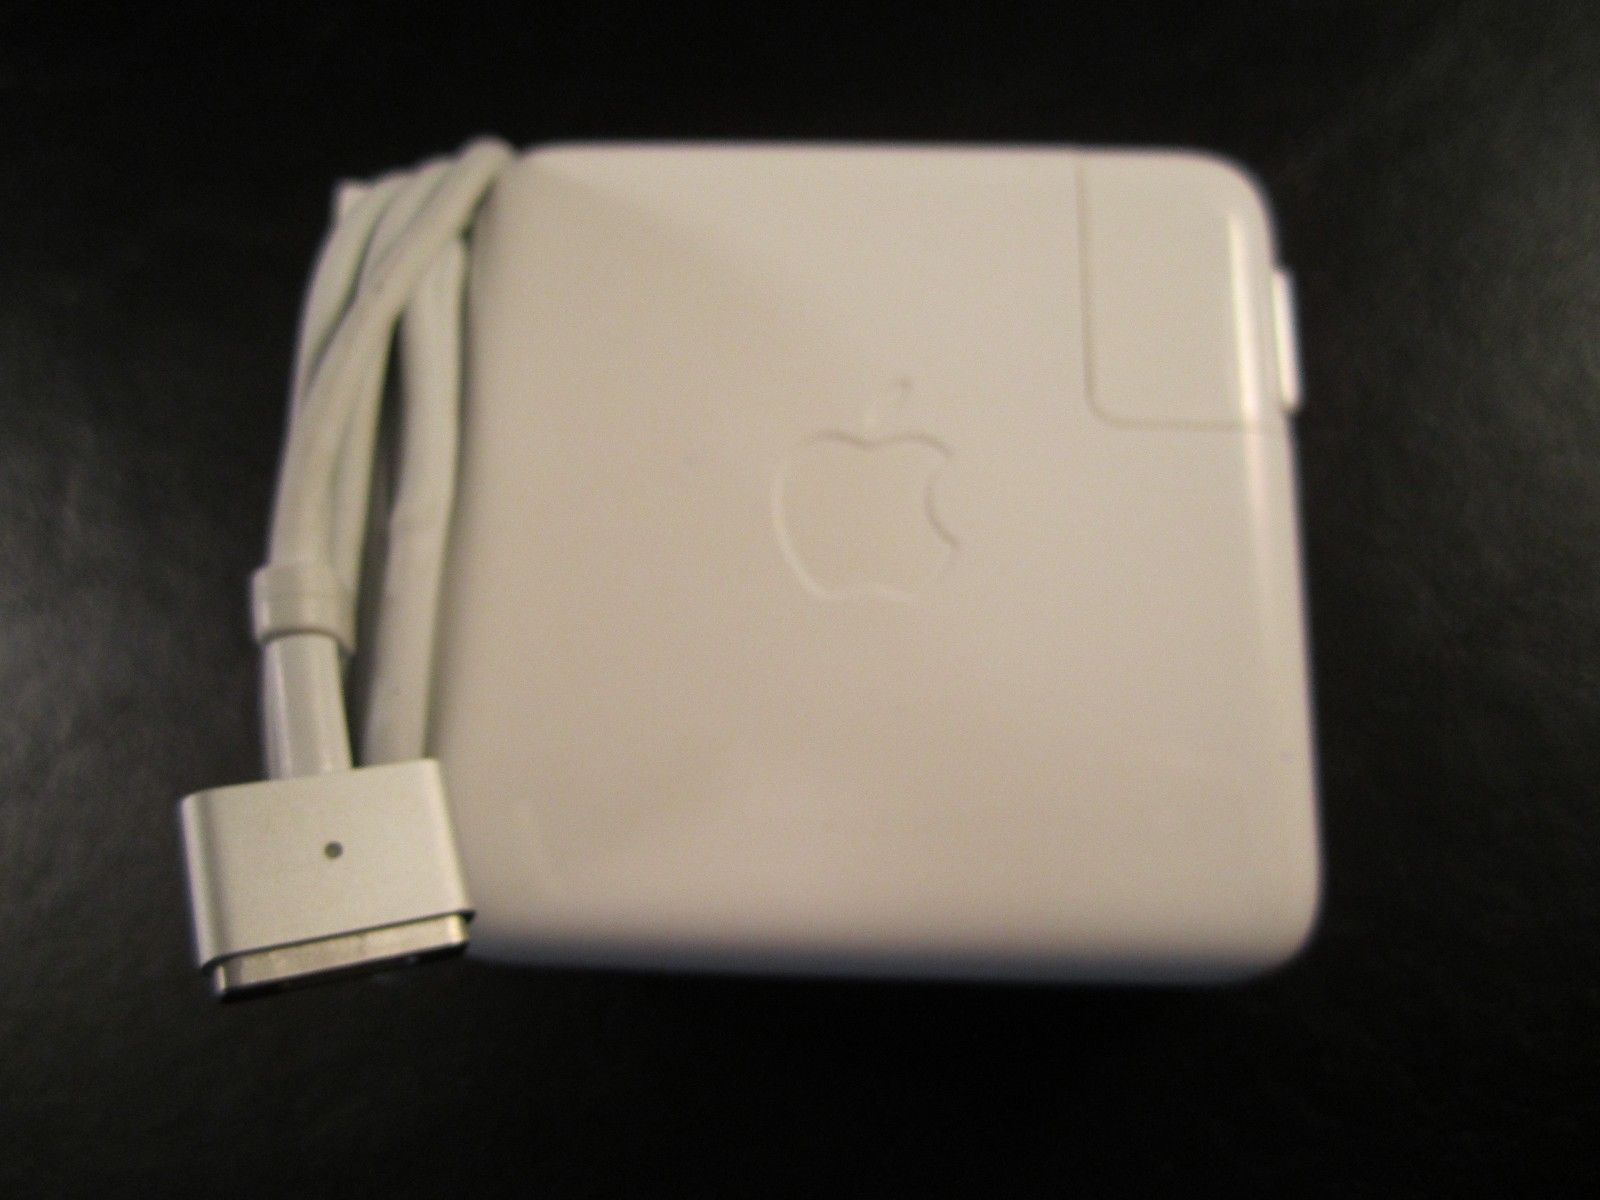 Genuine Apple 60w Magsafe 2 Charger For Macbook Pro Retina A1425 Adapter 60 Watt Image Is Loading